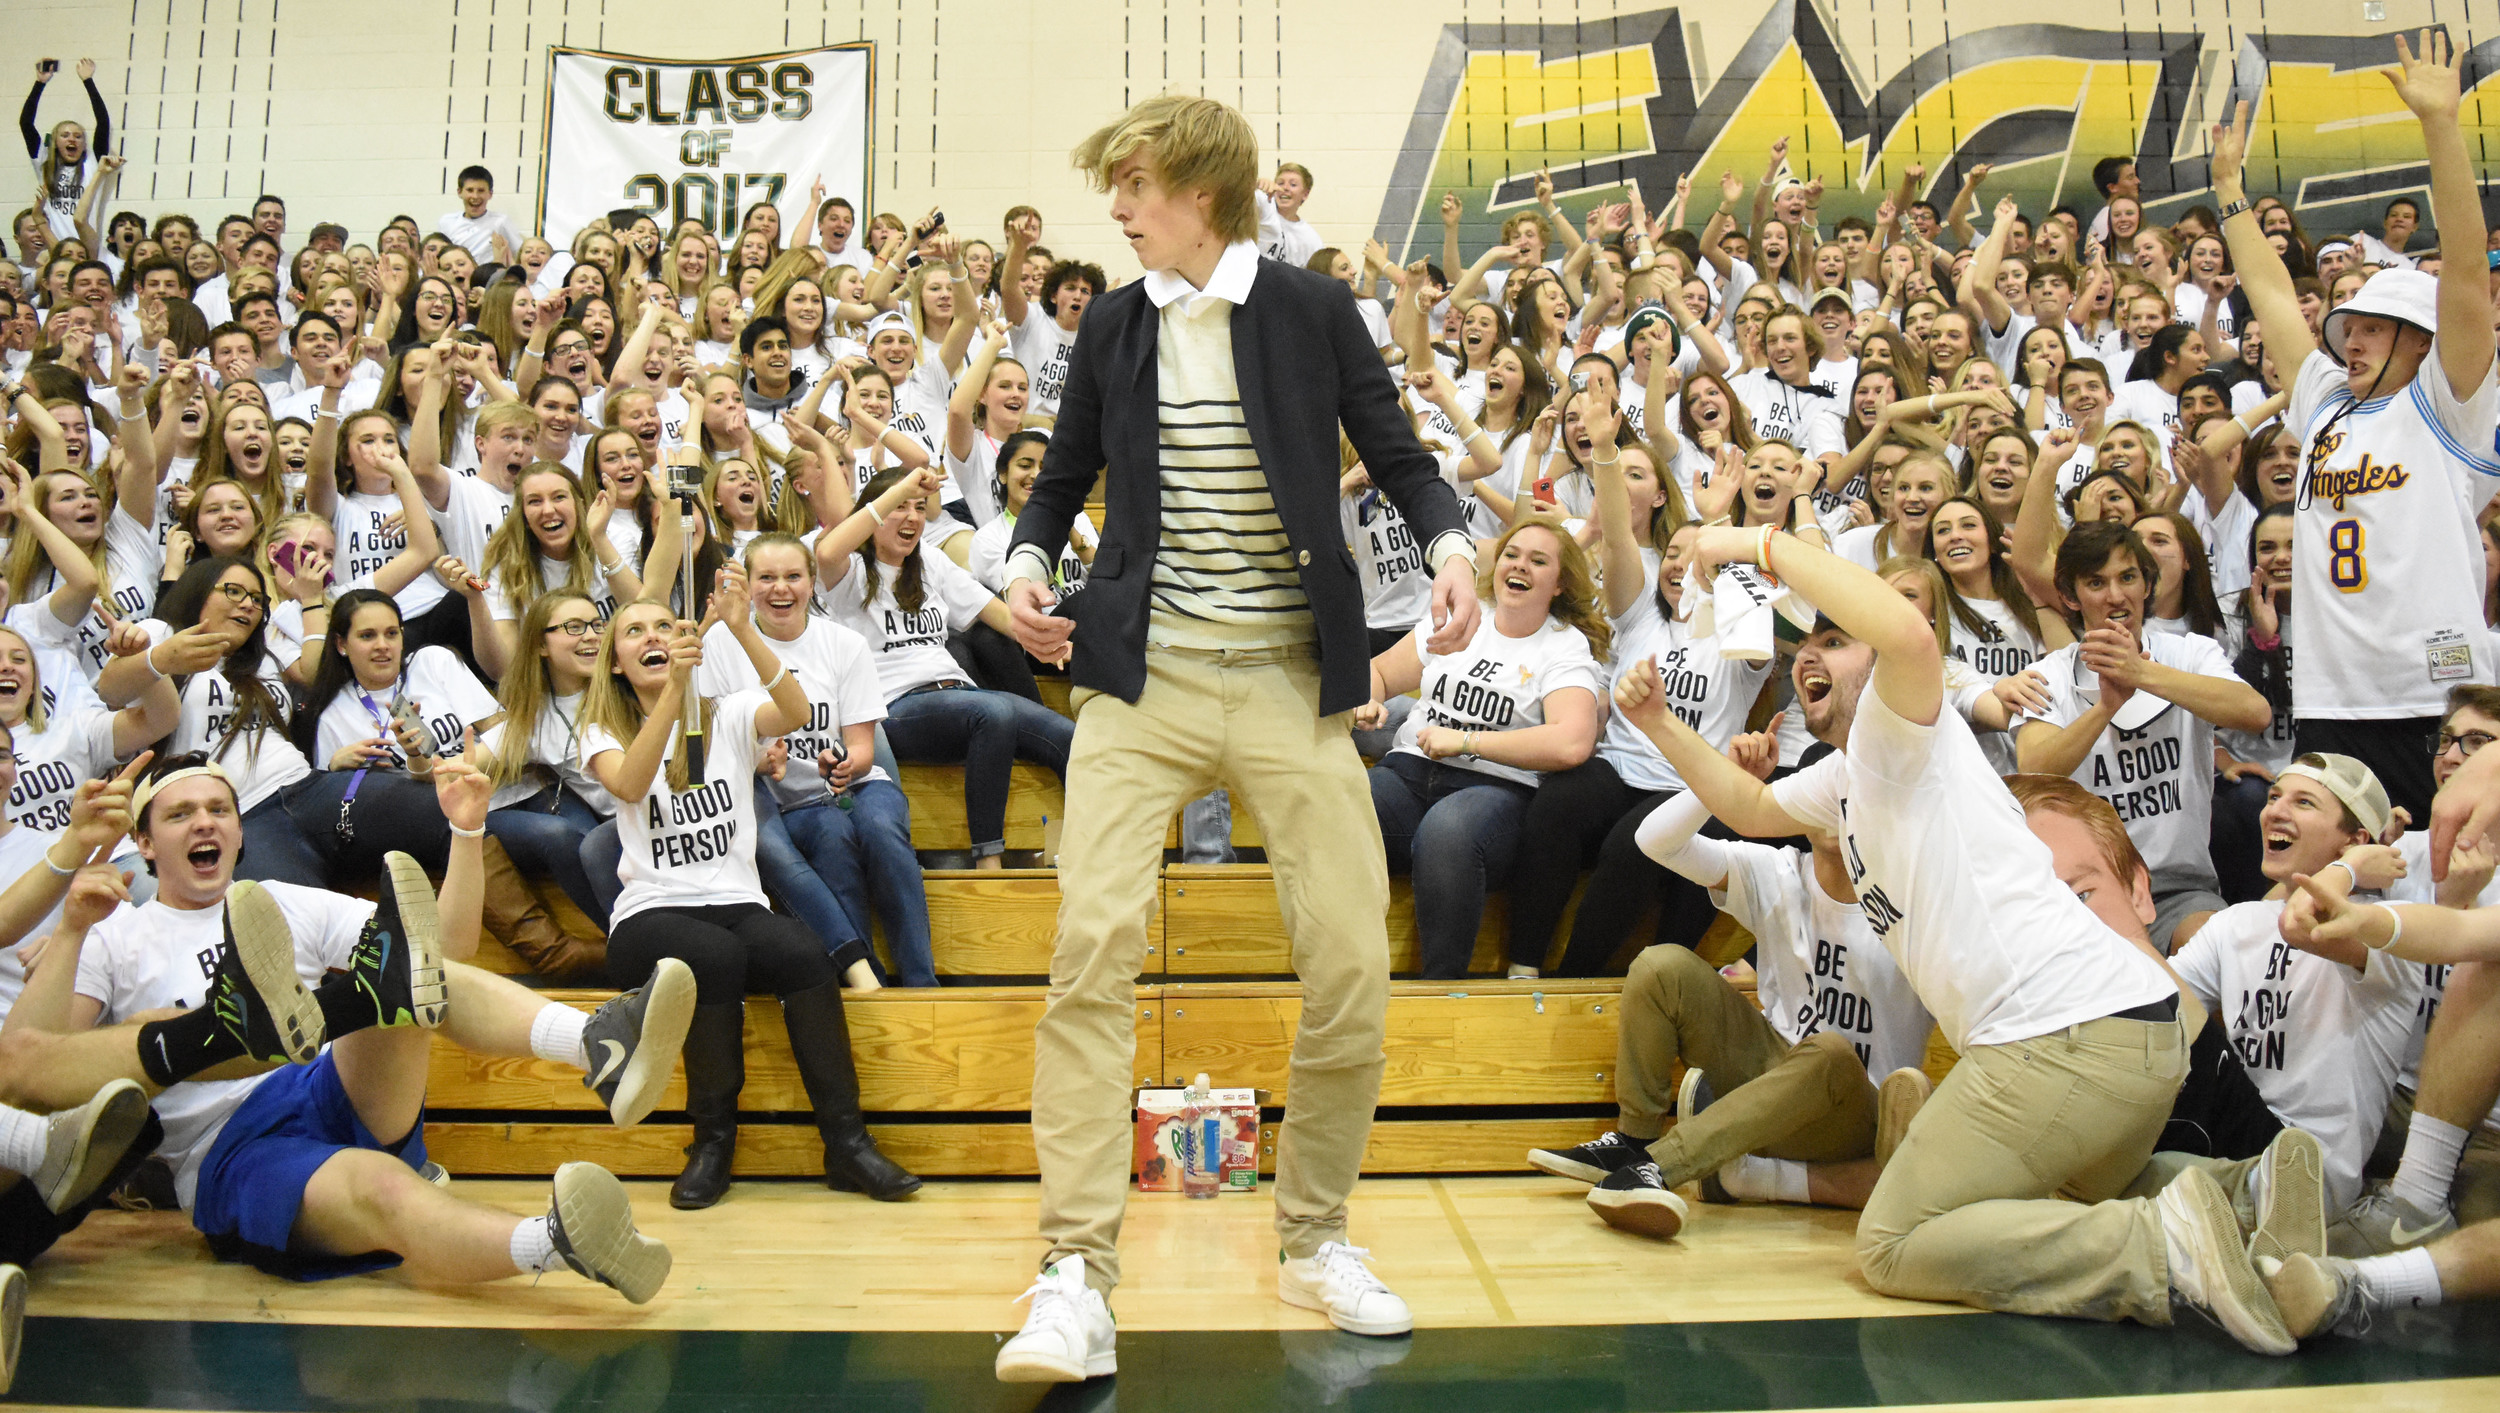 Senior Ben Holland emerges from the back of the Mountain Vista student section dressed like Ellen DeGeneres to shade the ThunderRidge students, who attempted to get Ellen to join in the school's Field Day activities in 2015, during halftime of the rivalry basketball game.